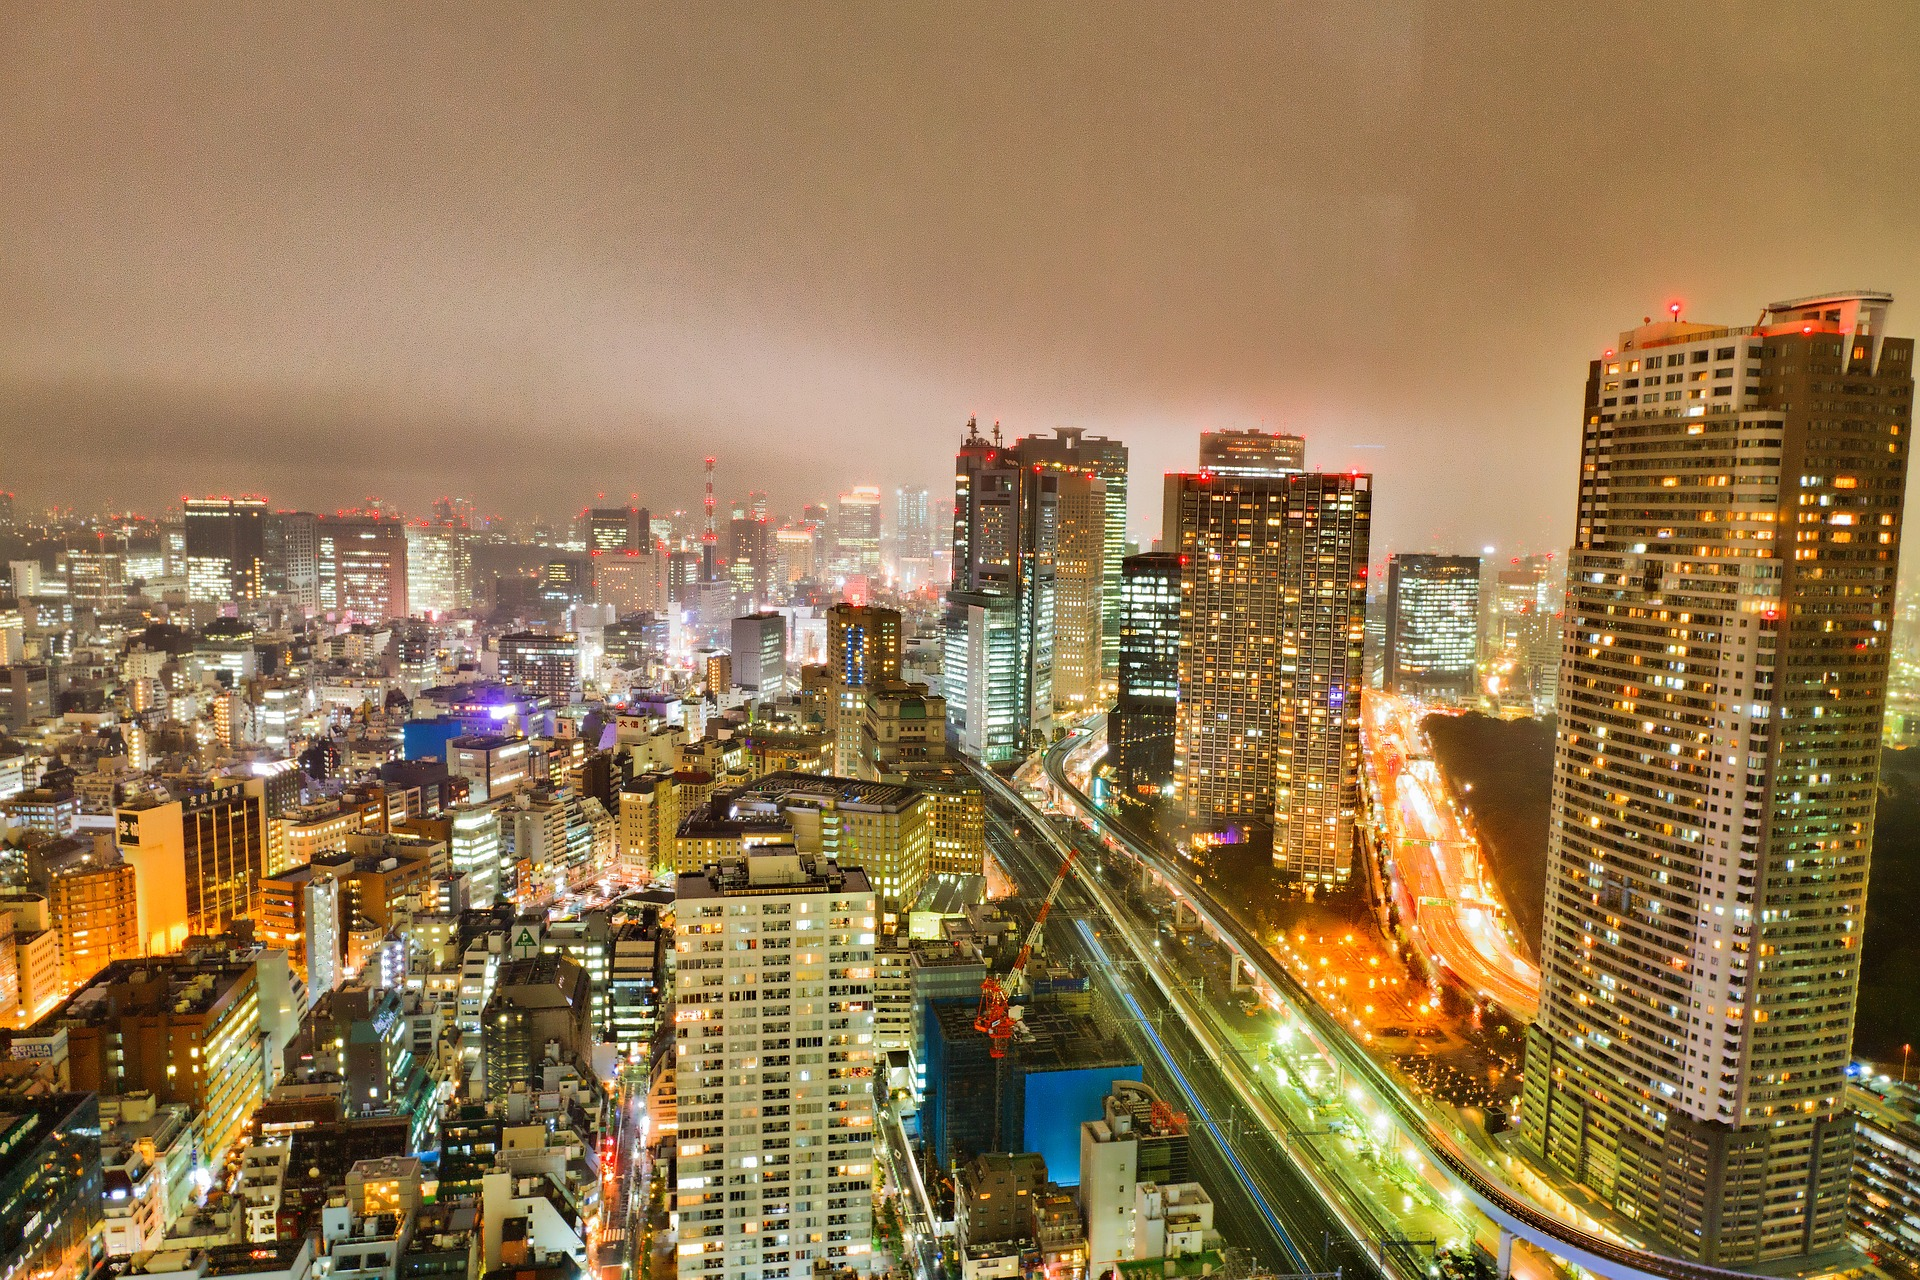 If you've only got 3 days in Tokyo, make sure you're staying in the right area to make the most of your time.